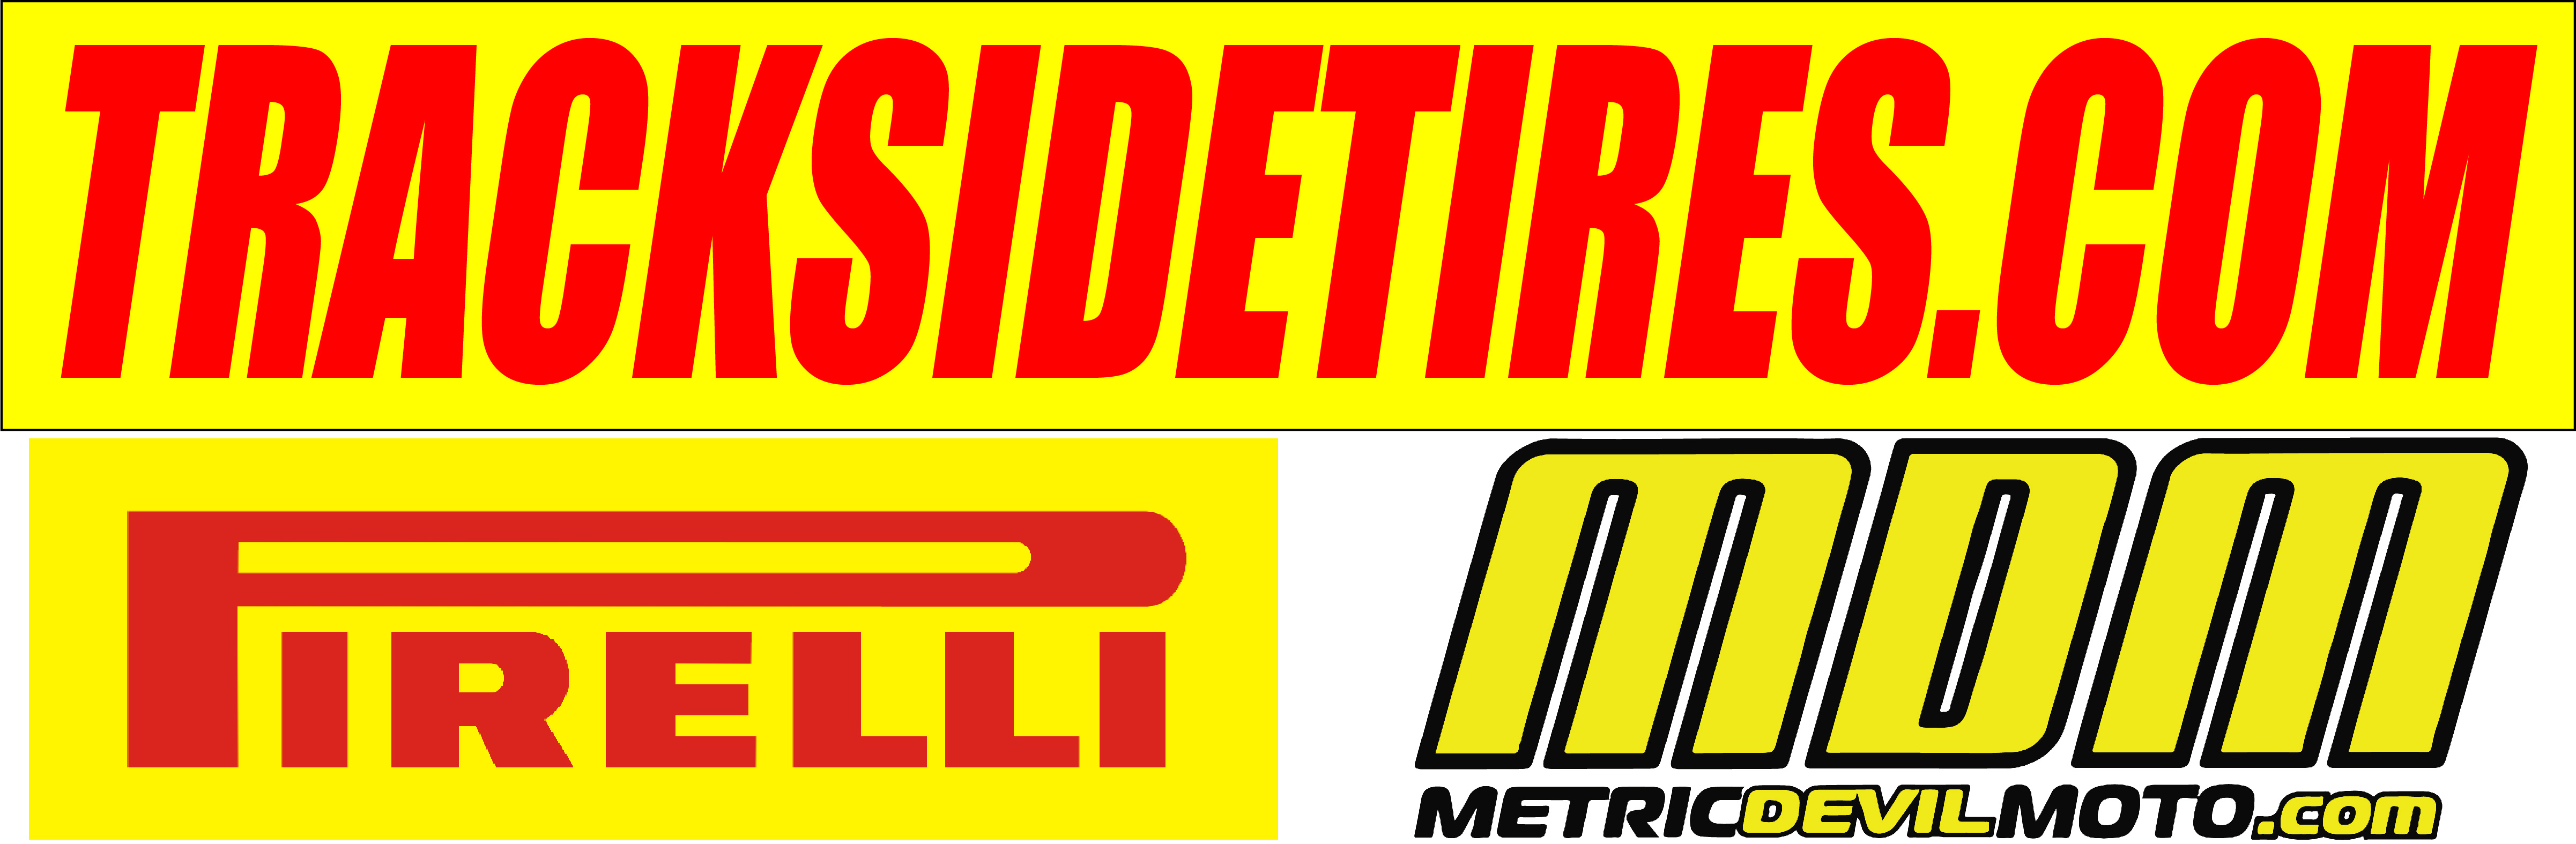 TRACKSIDETIRES.COM Pirelli Motorcycle Tires for Street and Track